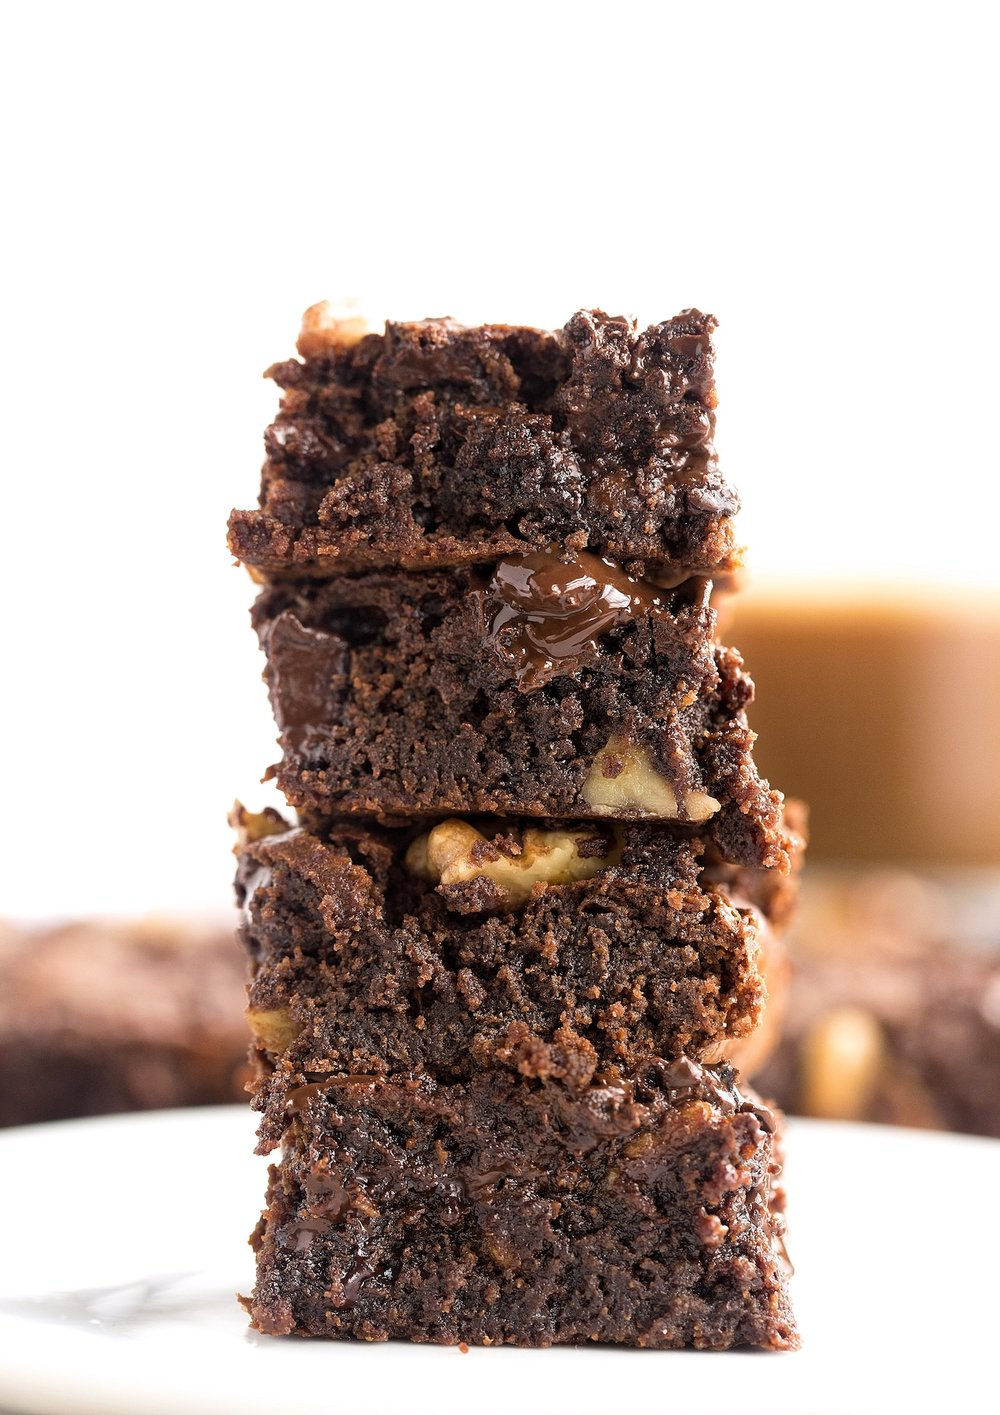 Wholesome Flourless Tahini Brownies: easy, quick, rich, gooey brownies made without dairy, refined sugar, oil, or gluten. Too good! | TrufflesandTrends.com